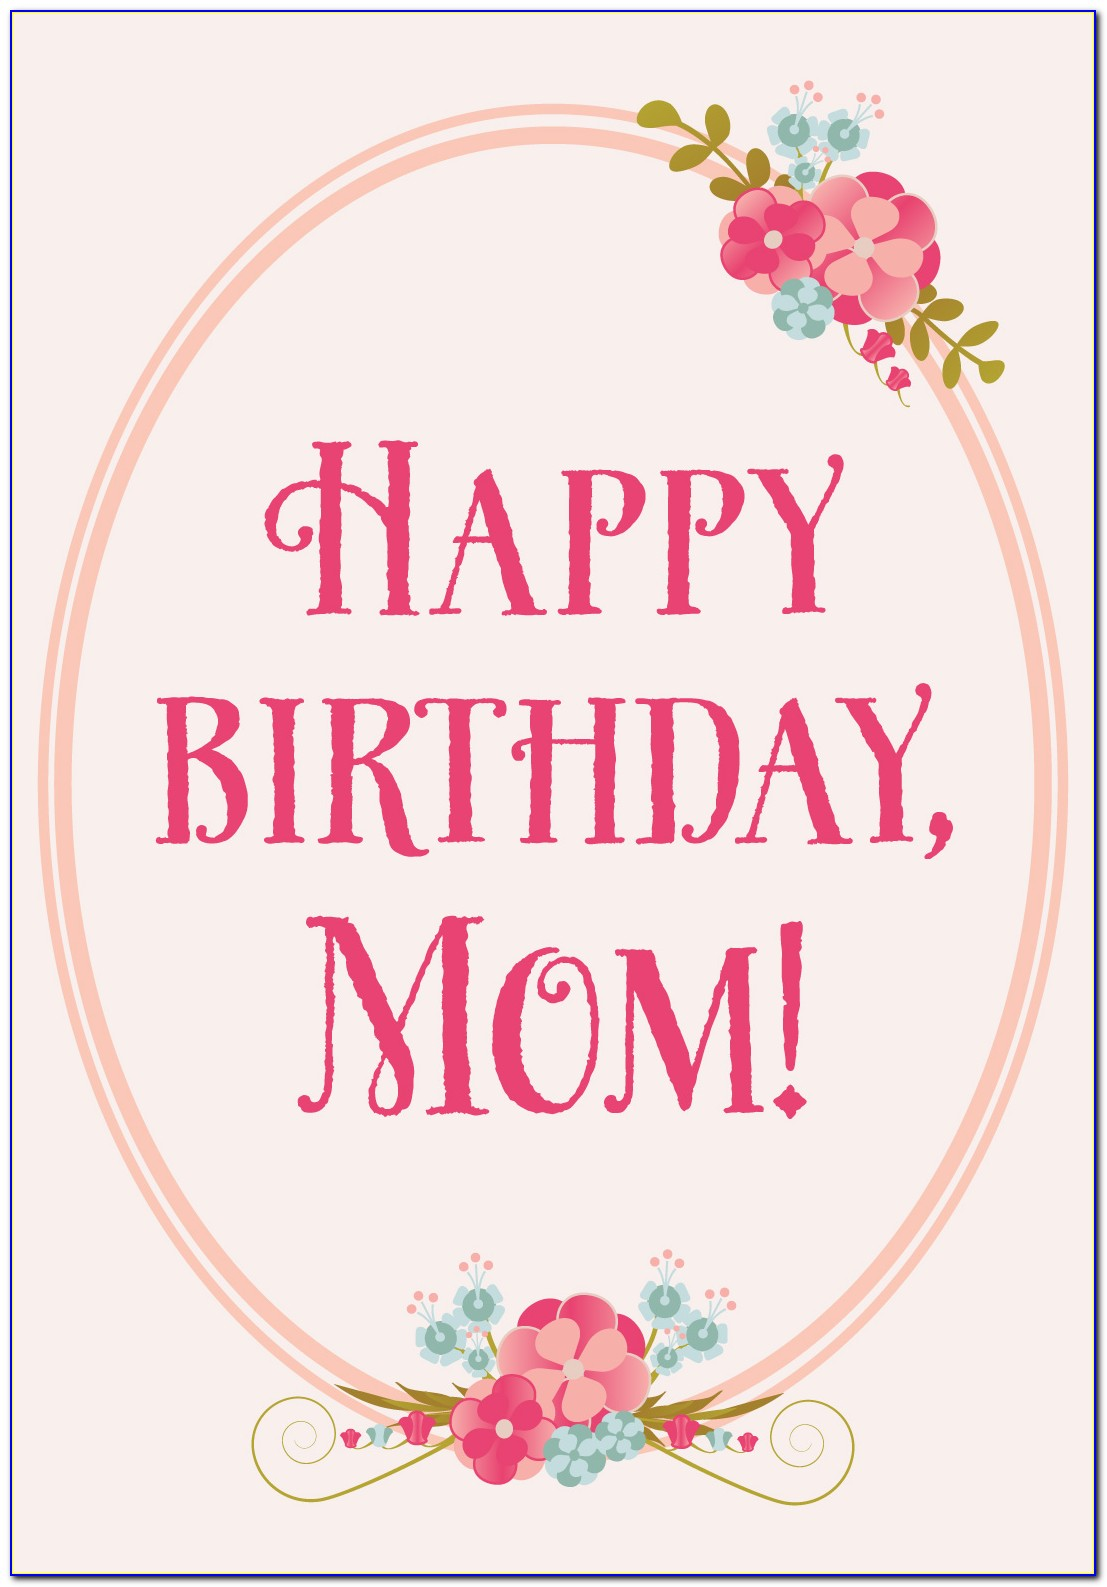 Funny Birthday Cards For Mom From Daughter